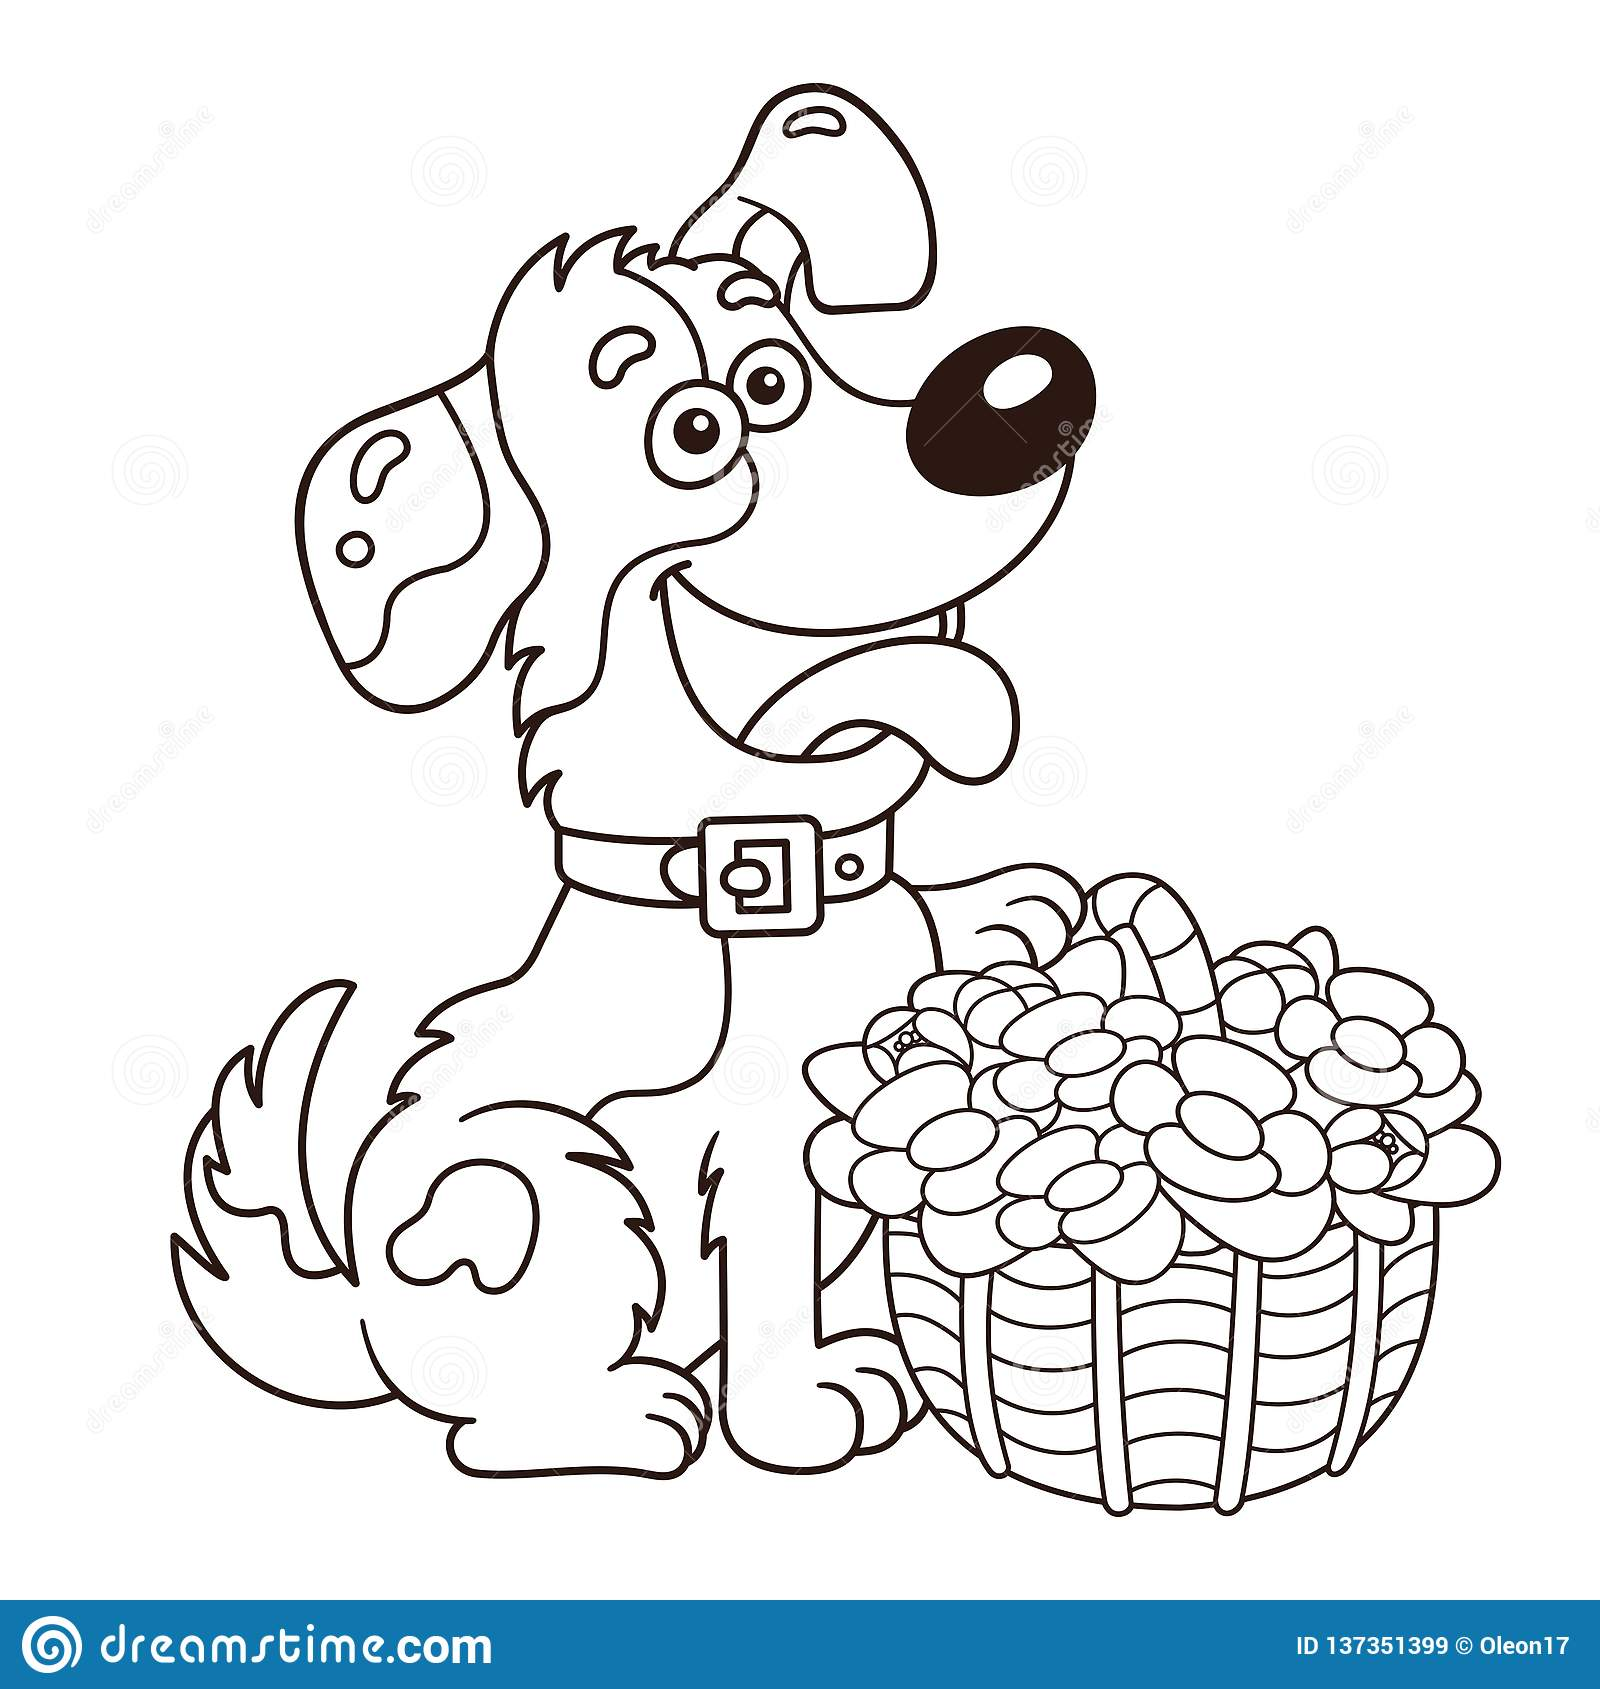 Coloring Page Outline Of Cartoon Dog With Basket Of Flowers